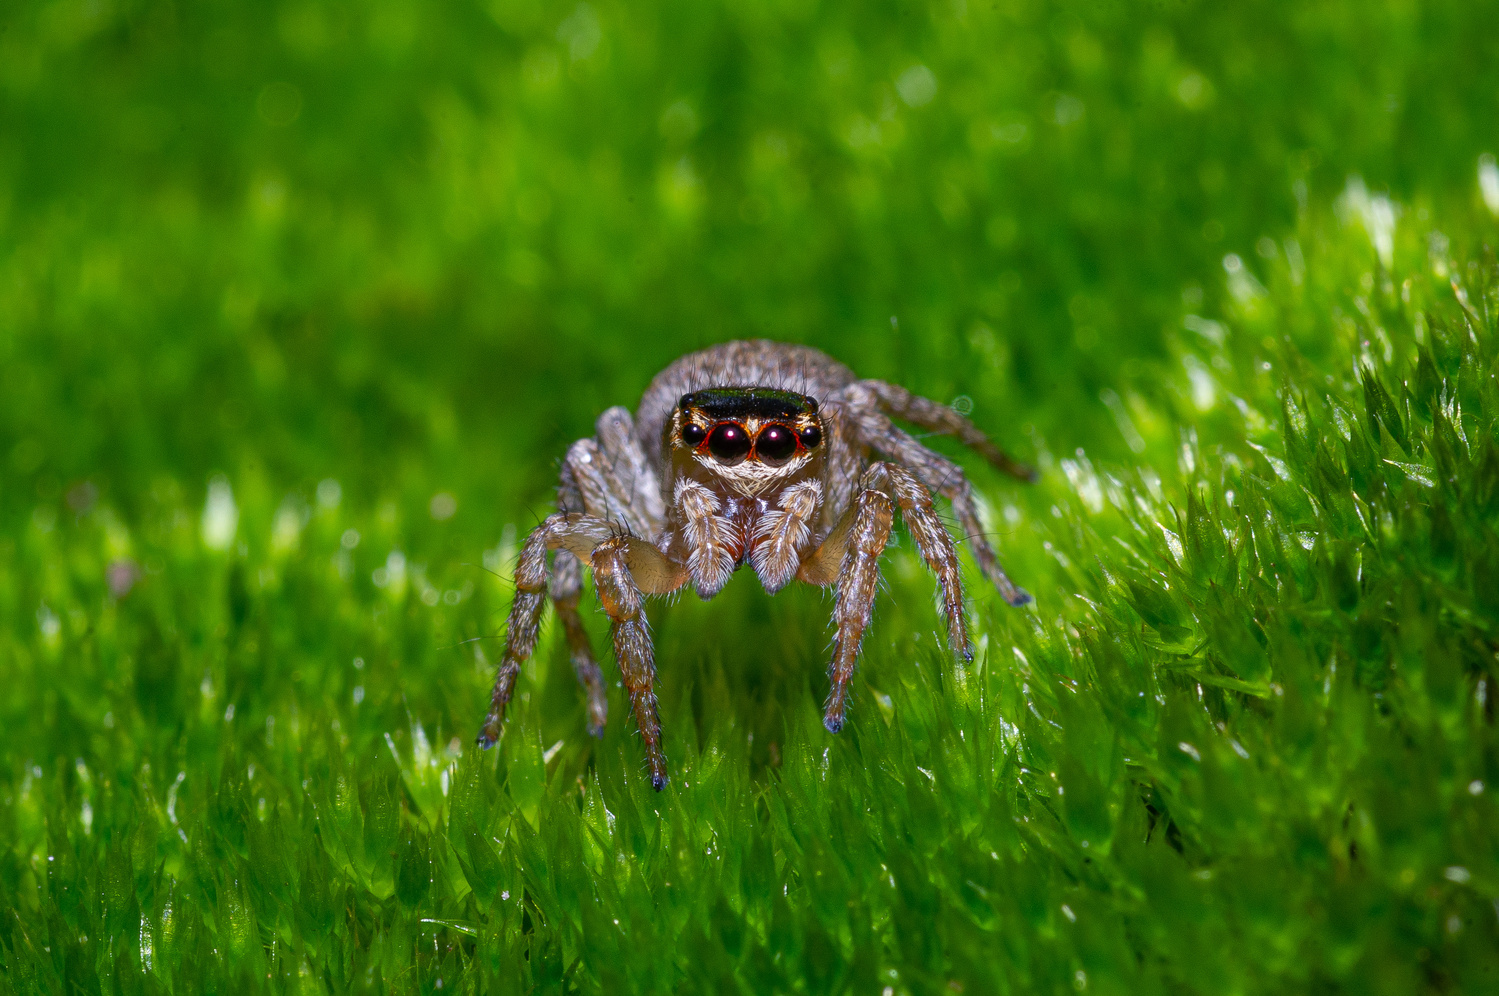 Jumping spider on moss by Jeremy Martignago